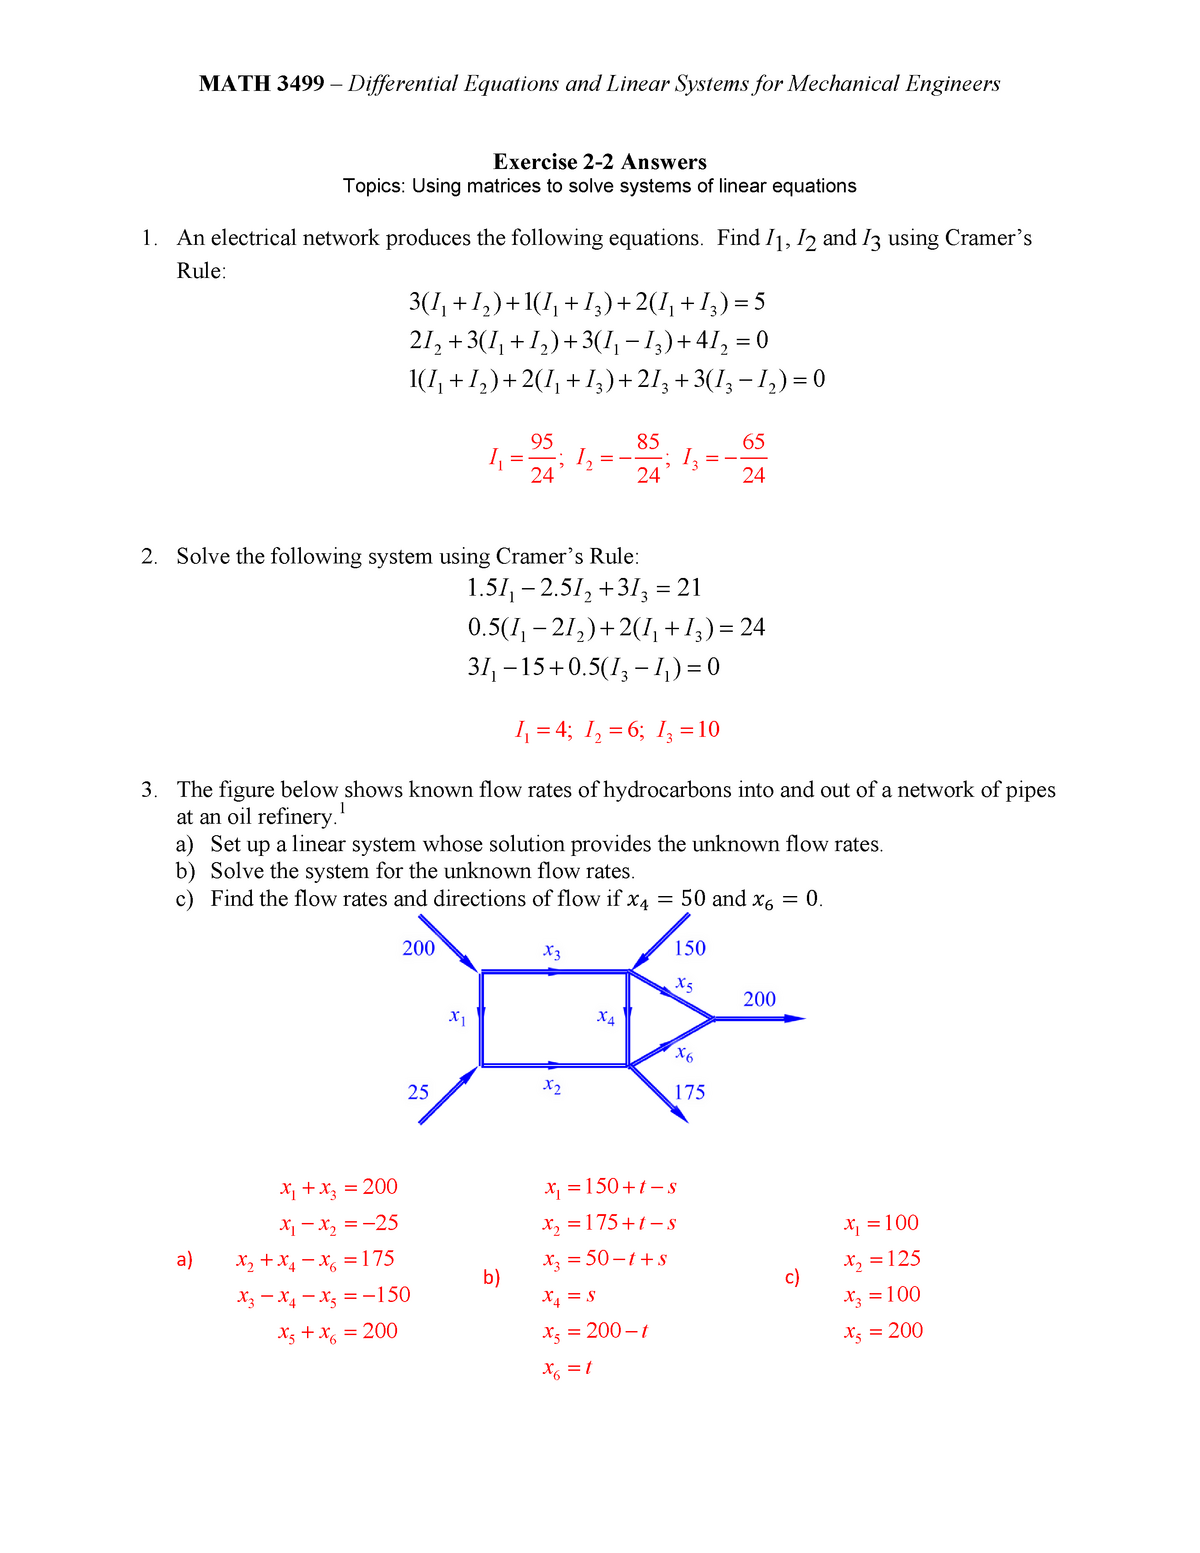 Exercise 2-2 - Answers - MATH 3499: Ordinary Differential Equations